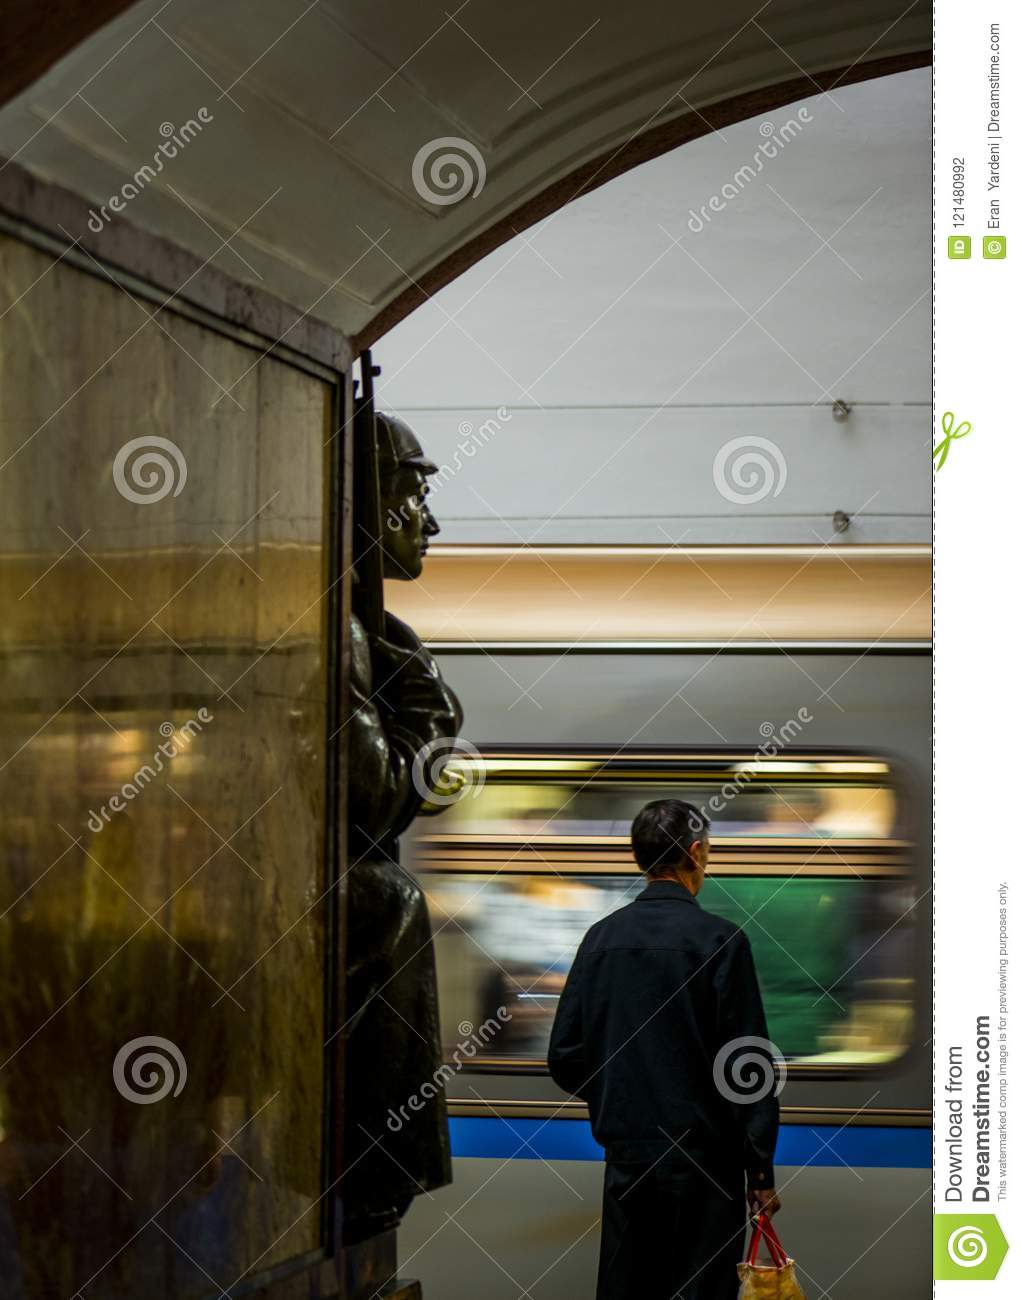 Bronze sculpture in the famous russian revolution metro station, moscow, russia